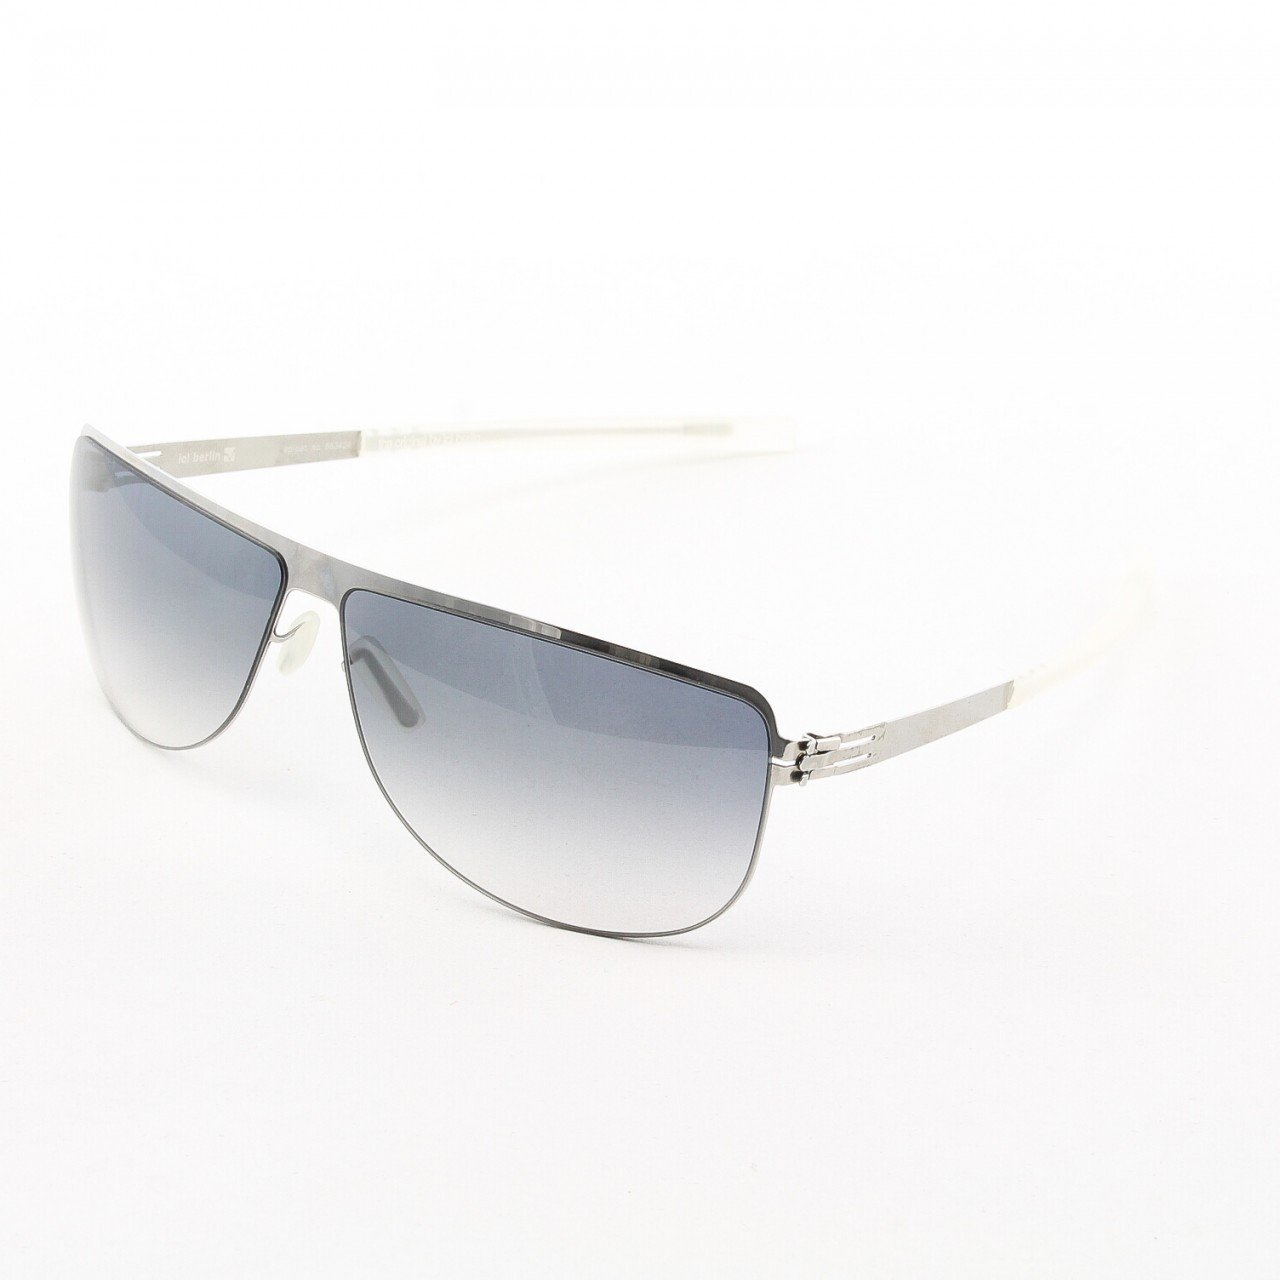 ic! Berlin Anselm Sunglasses Col. Chrome with Black Gradient Lenses